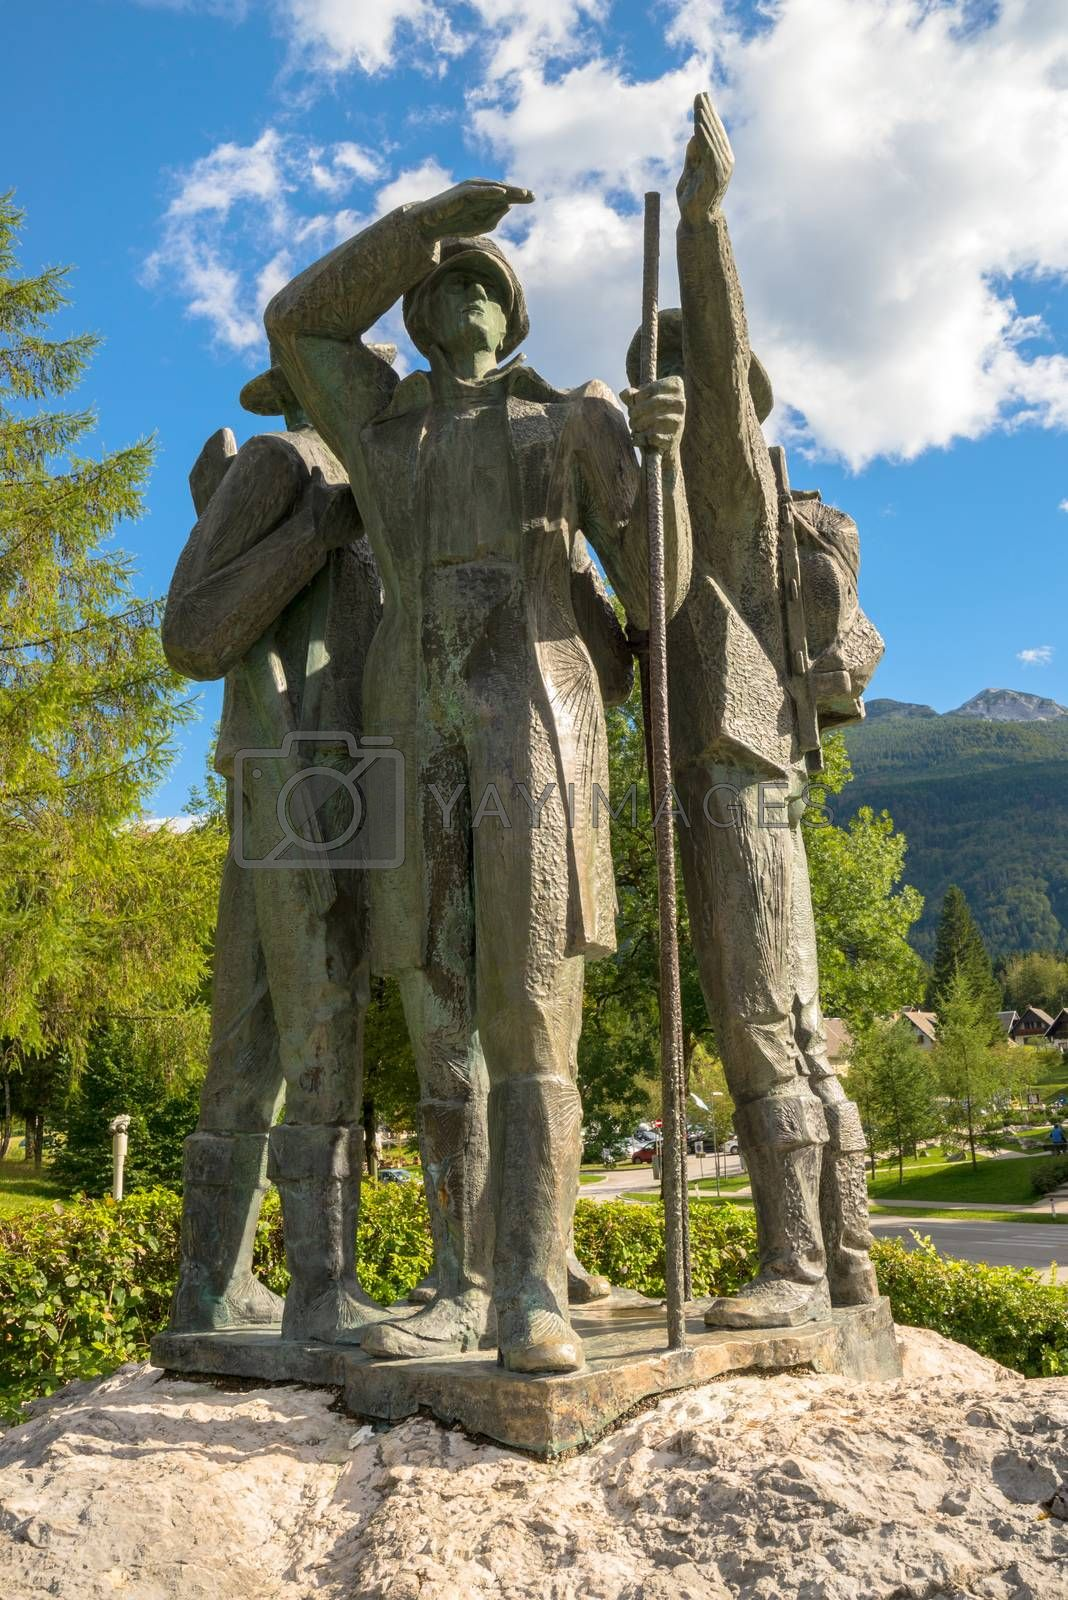 RIBCEV LAZ, SLOVENIA - AUGUST 22, 2016: Four brave men from Bohinj - the first men on Triglav. Statue of Bohinj natives that climbed highest mountain in Slovenia on August 26th in 1778.